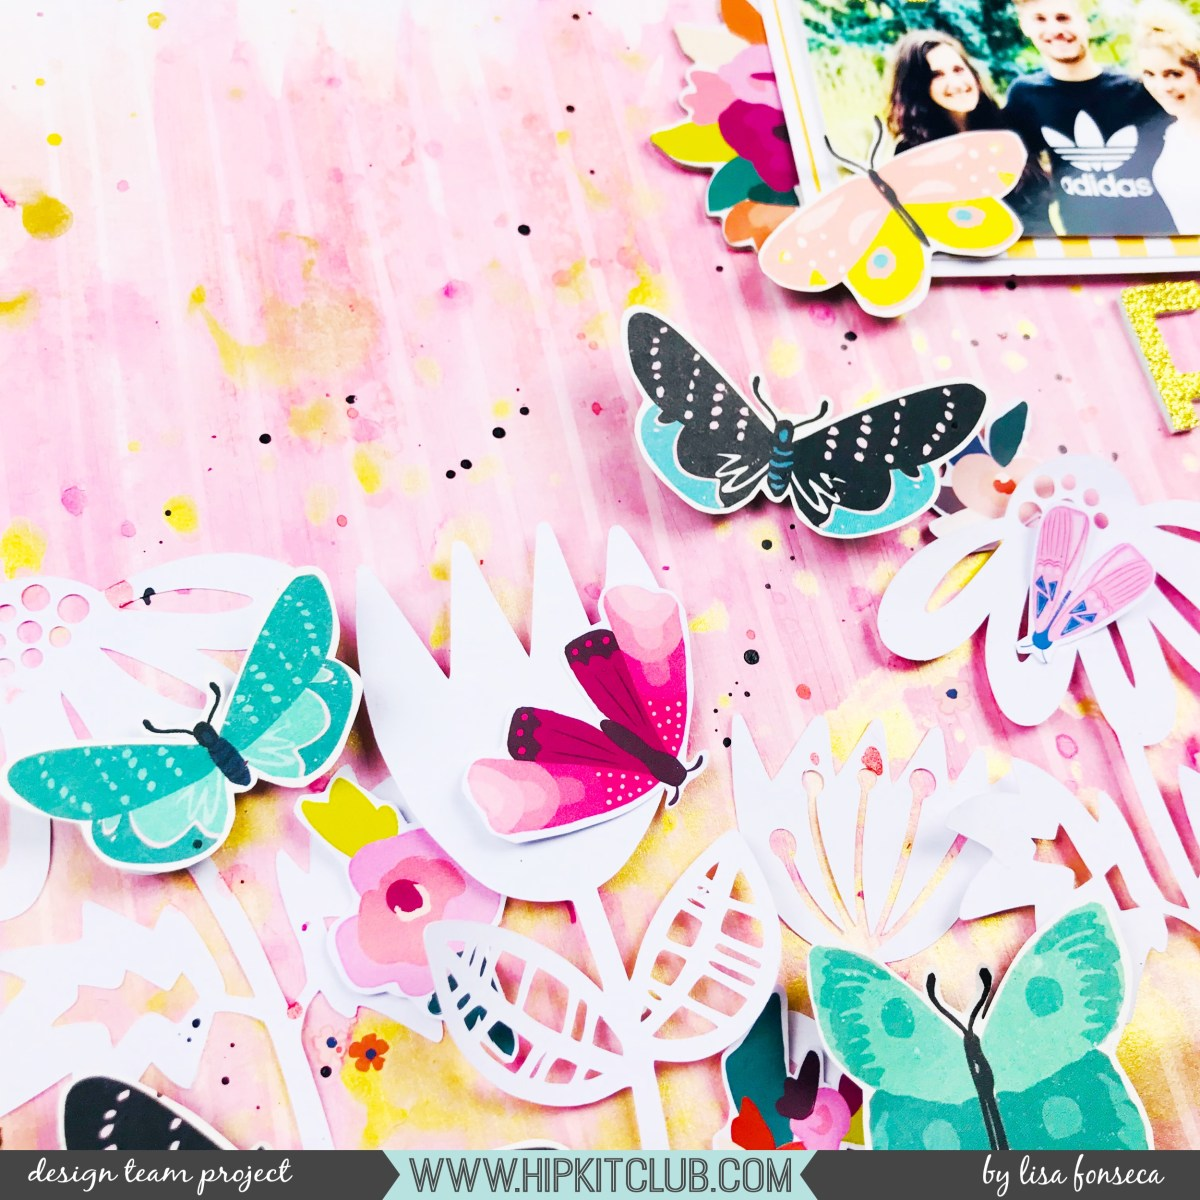 The fam - Product focus, flowers and butterflies - Lisa Fonseca